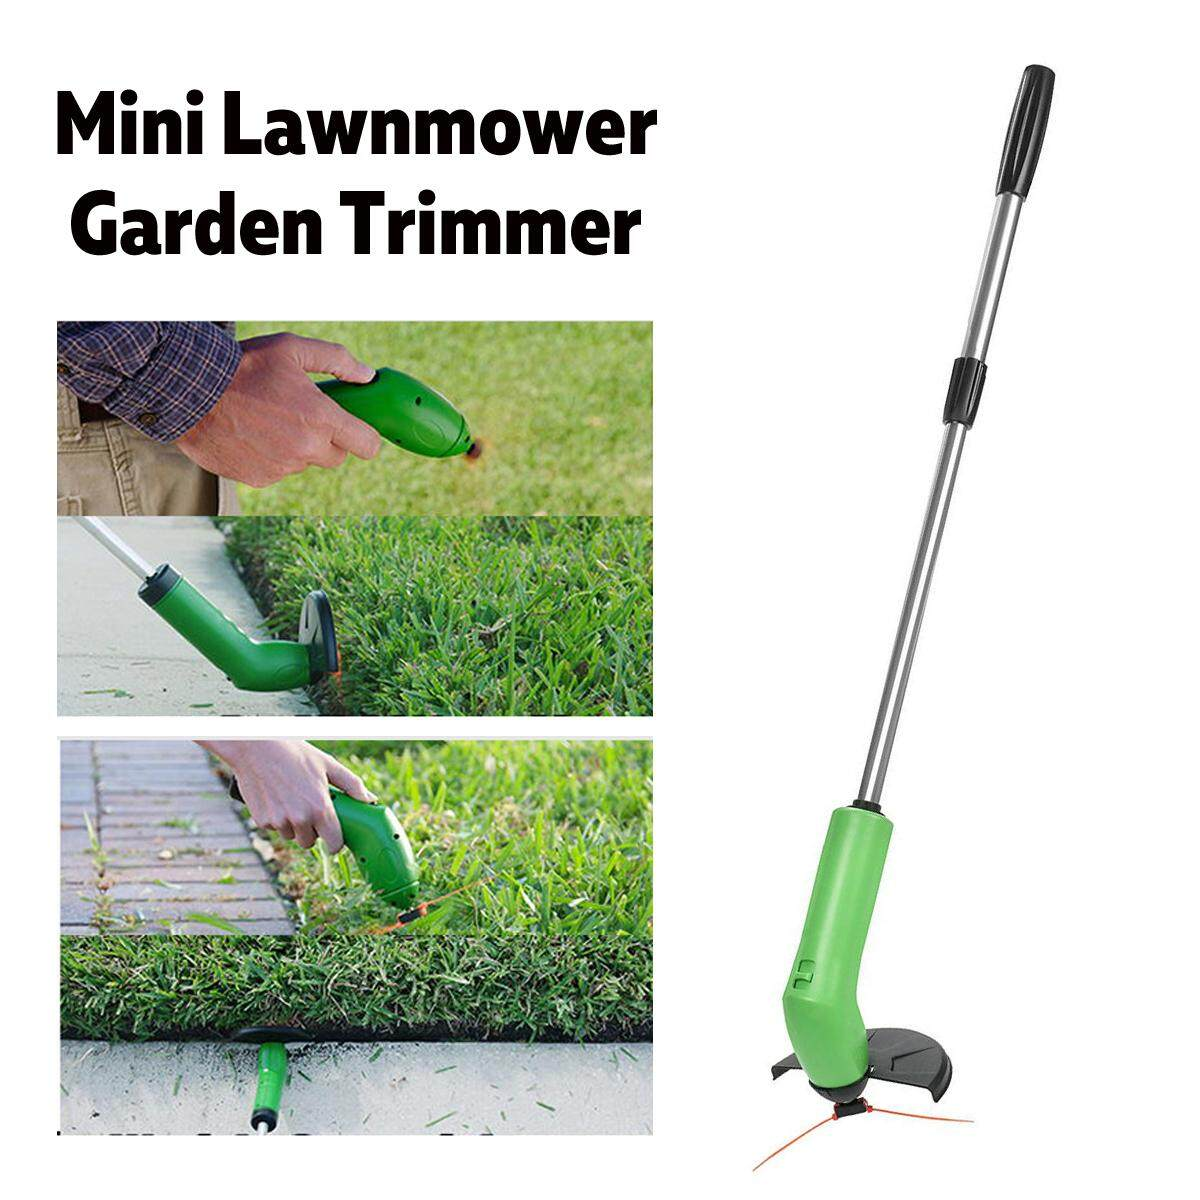 Garden Zip Trim Portable Cordless Trimmer Lawnmower Grass Edger Works With Standard Zip Ties